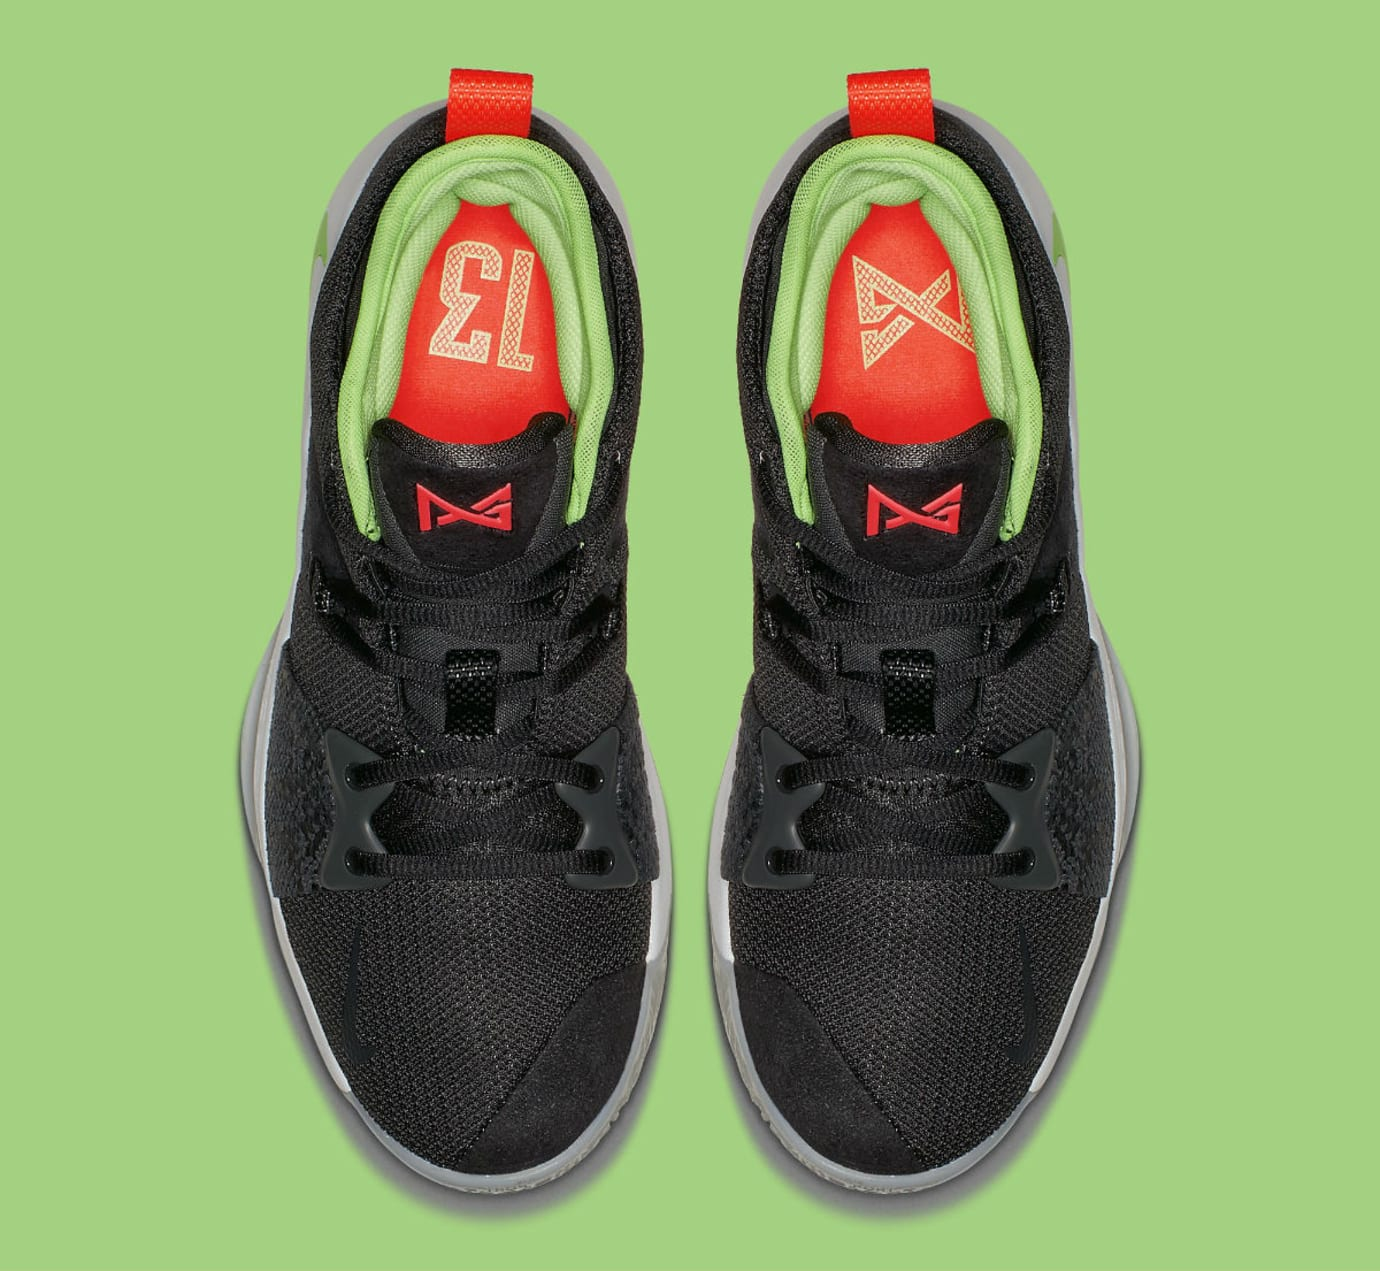 Nike PG 2 Anthracite Hot Punch White Wolf Grey Release Date AJ2039-005 Top